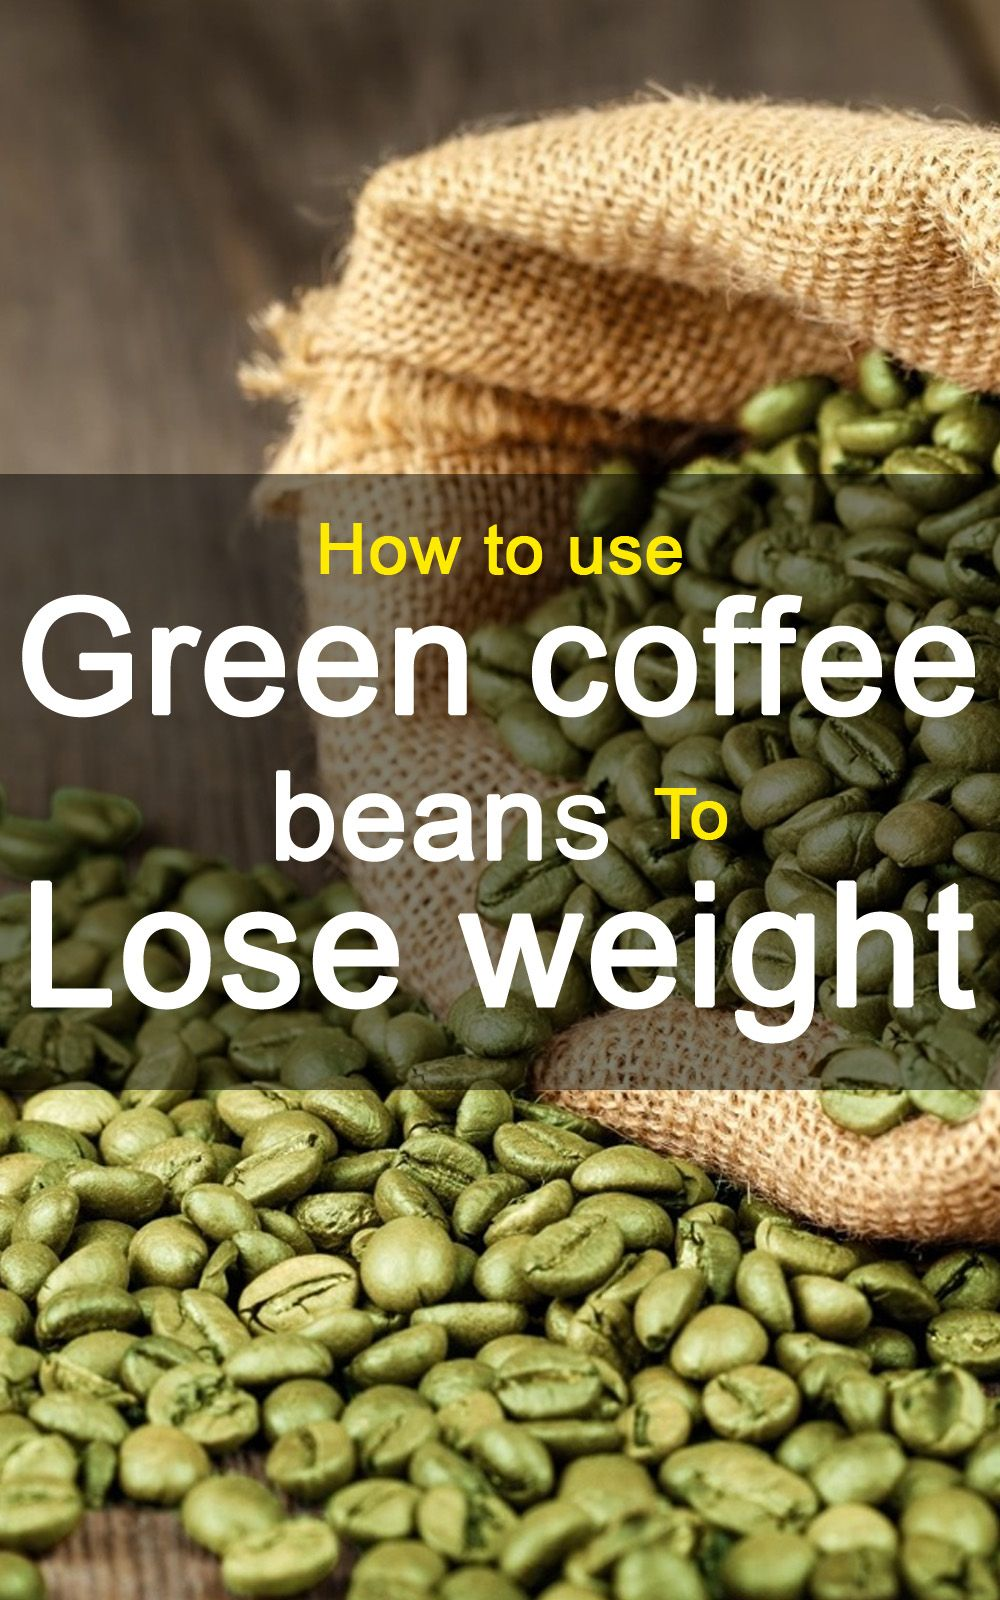 eating green coffee beans to lose weight